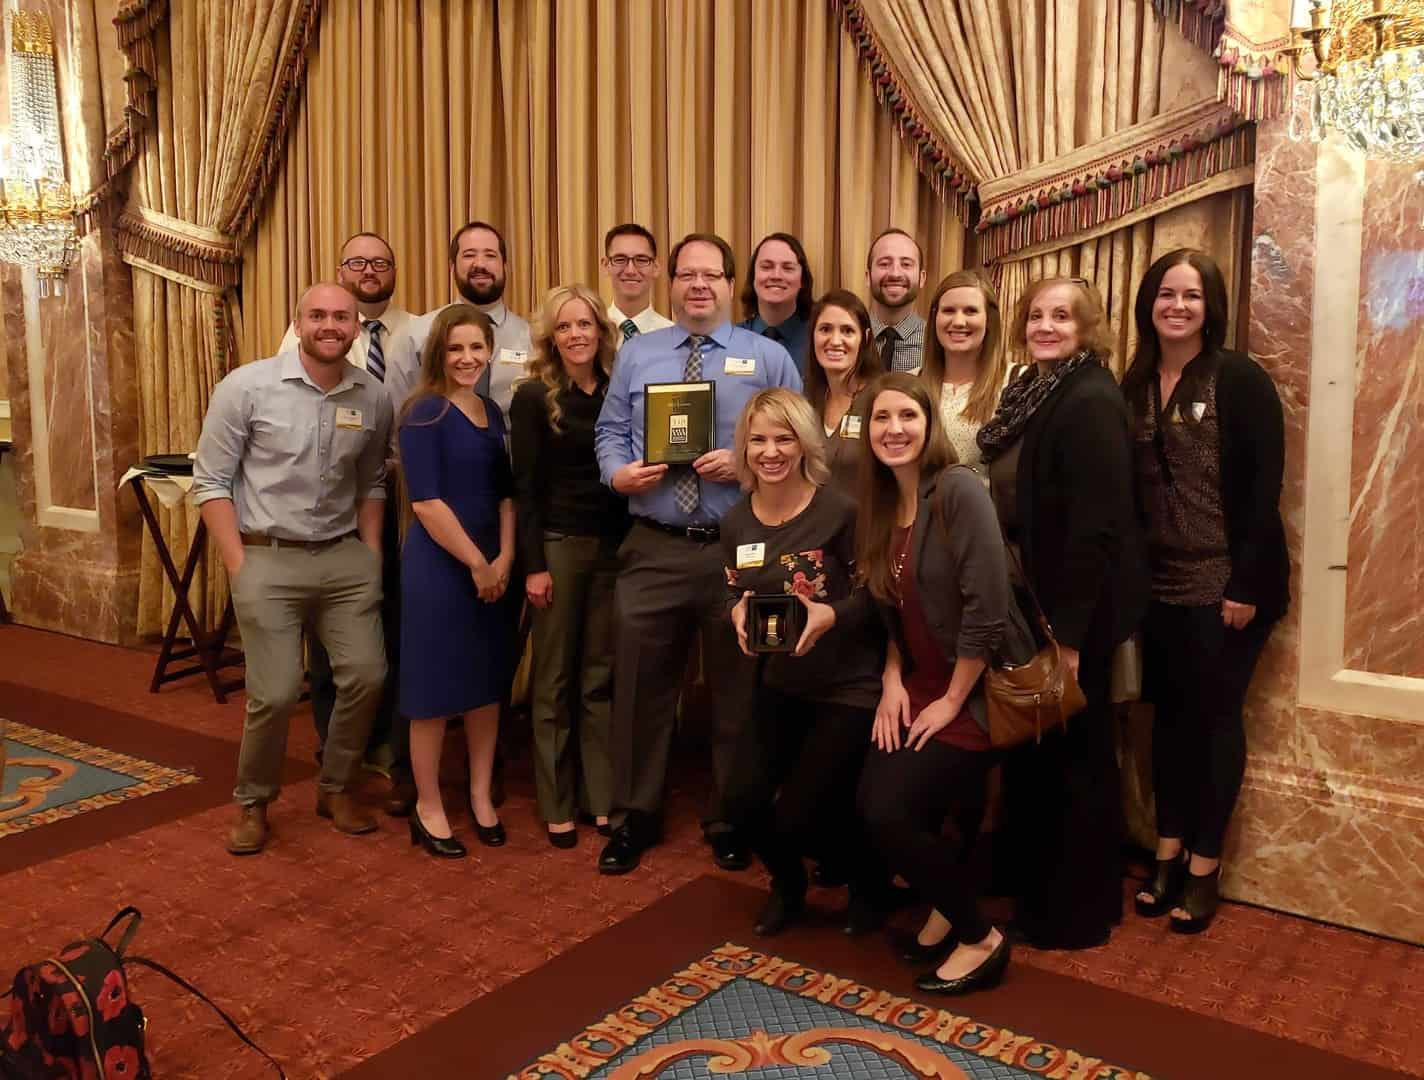 BKA Content One Of Utah's Top 100 Fastest Growing Companies 4 Years In A Row